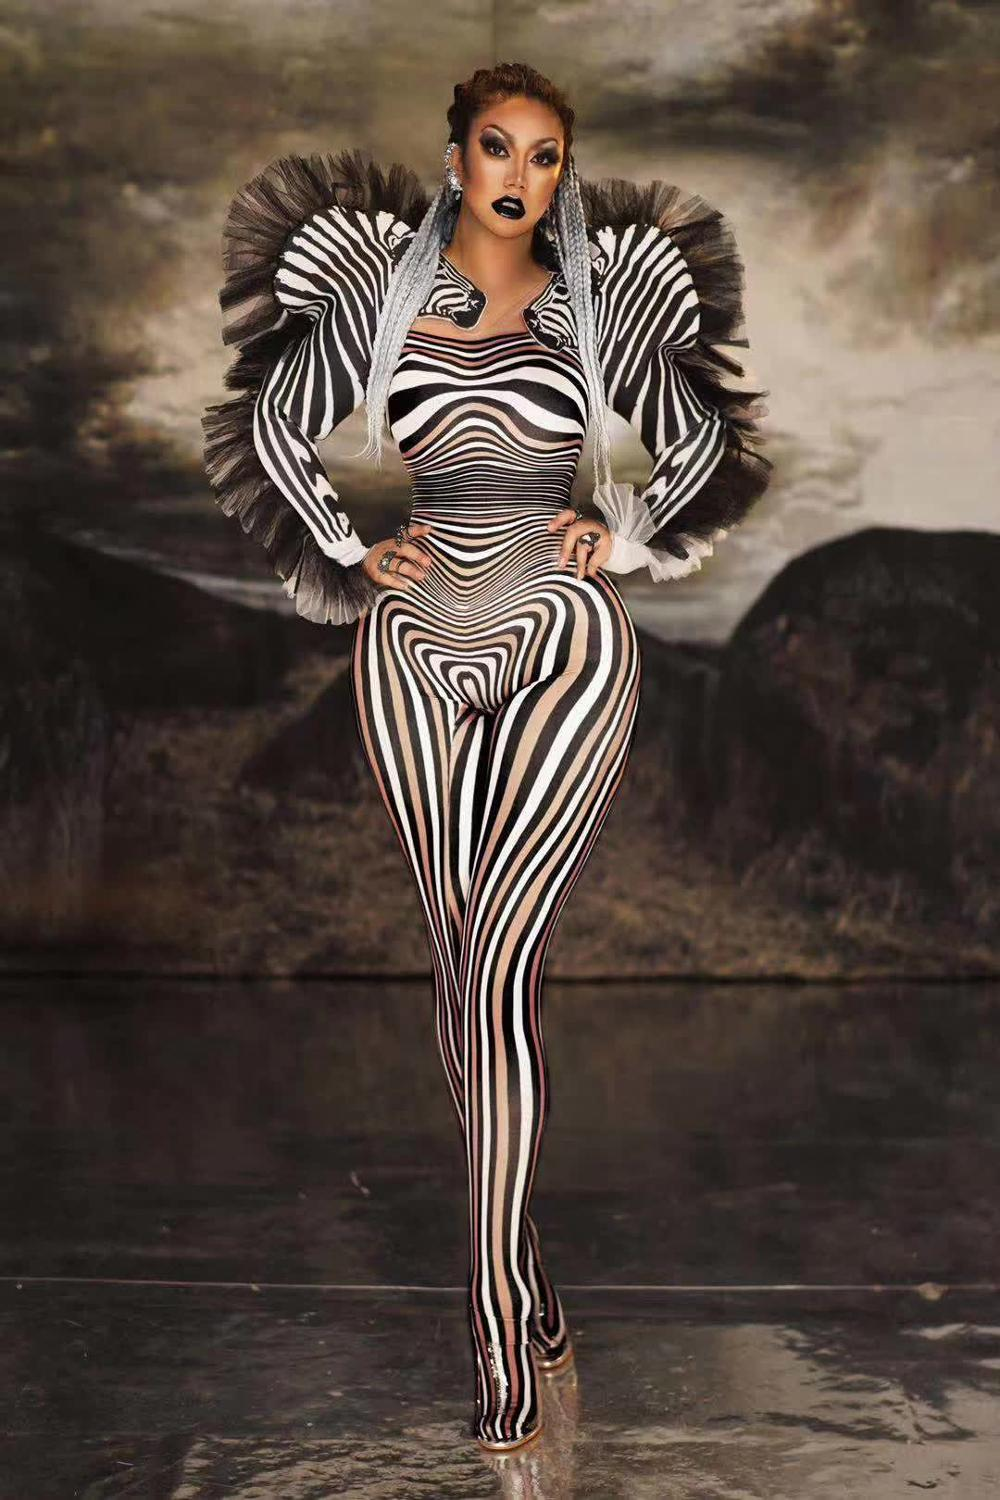 New Fashion Zebra Pattern Jumpsuit Women <font><b>Singer</b></font> <font><b>Sexy</b></font> <font><b>Stage</b></font> Outfit Bar <font><b>DS</b></font> Dance Cosplay Jumpsuit Performance Show <font><b>Costume</b></font> image